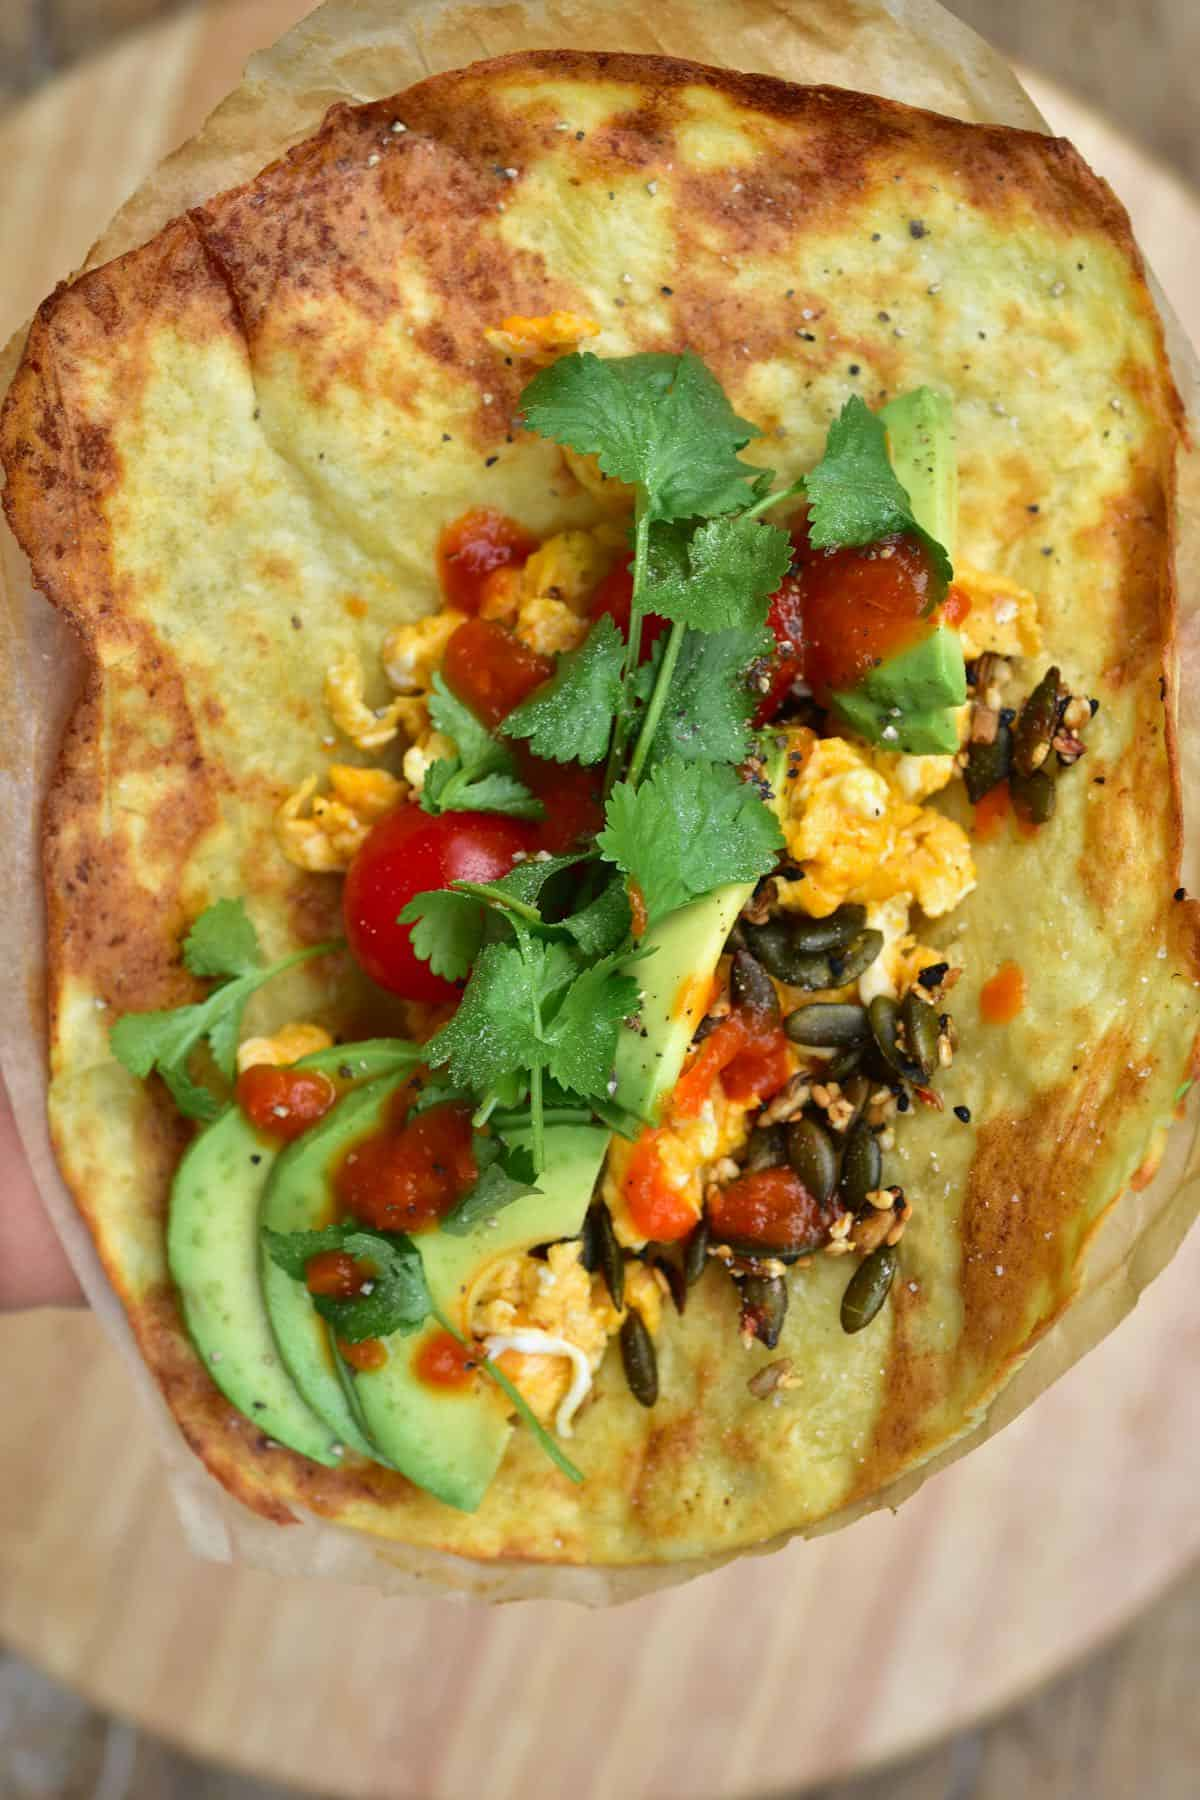 Potato flatbread topped with avocado tomatoes seed mix and cilantro